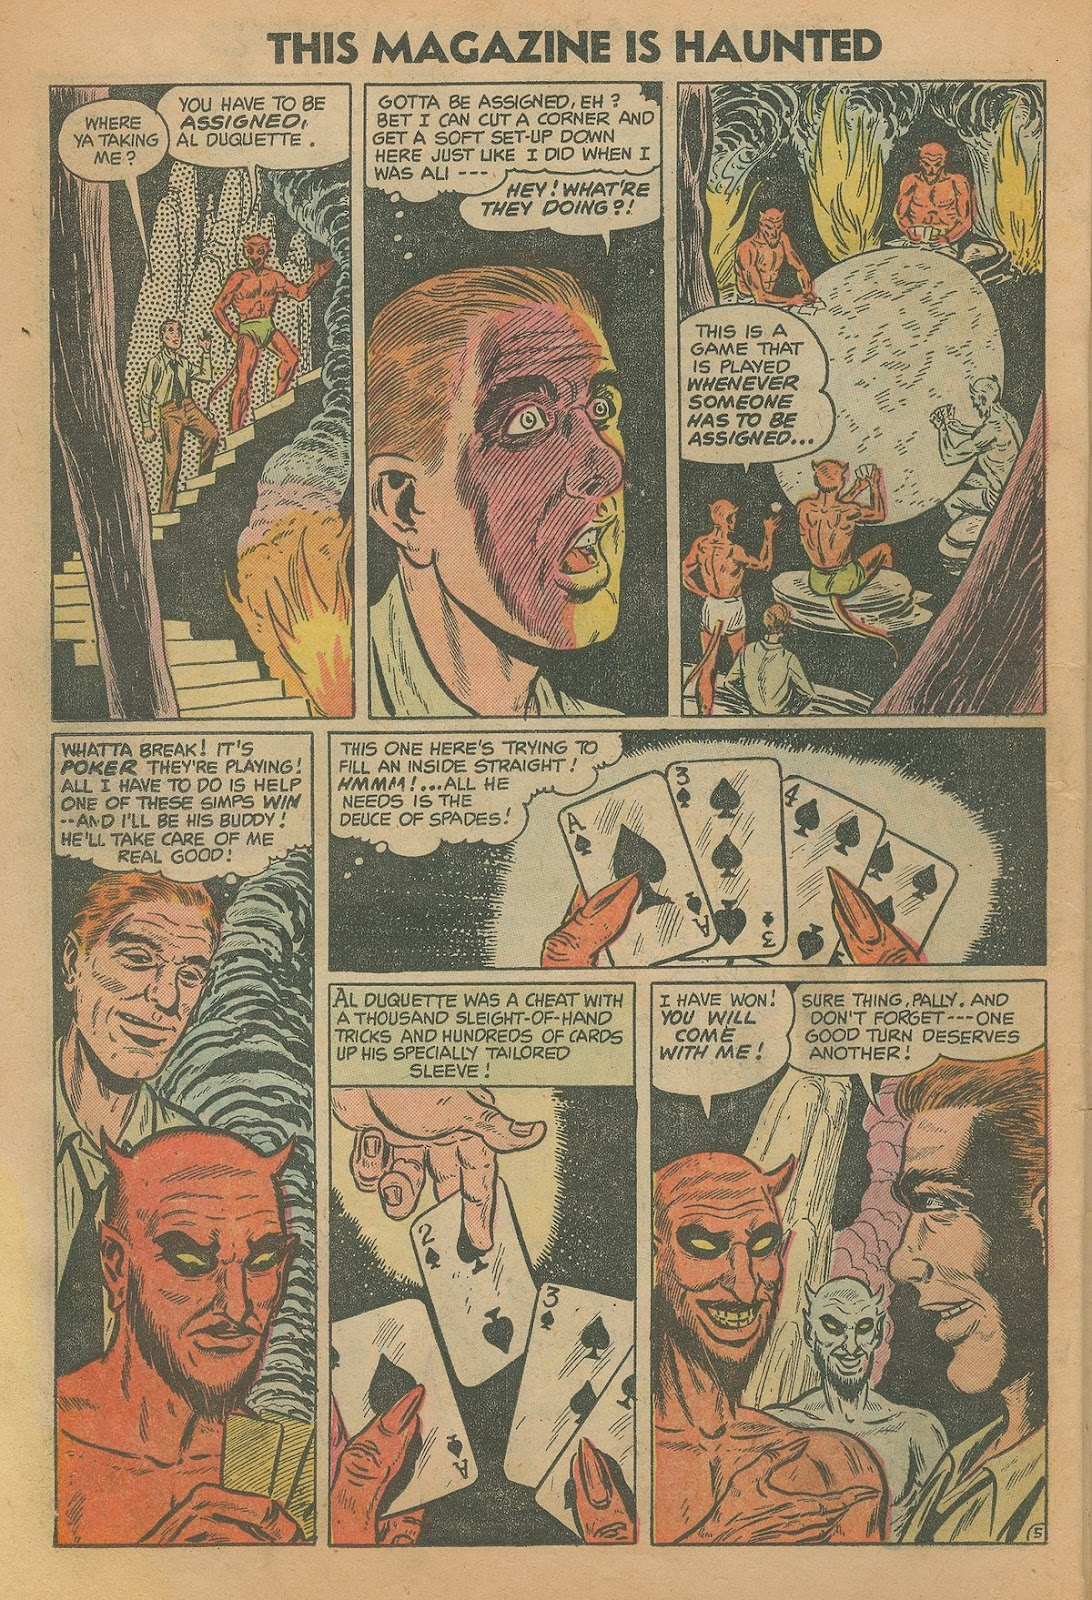 Read online This Magazine Is Haunted comic -  Issue #19 - 22